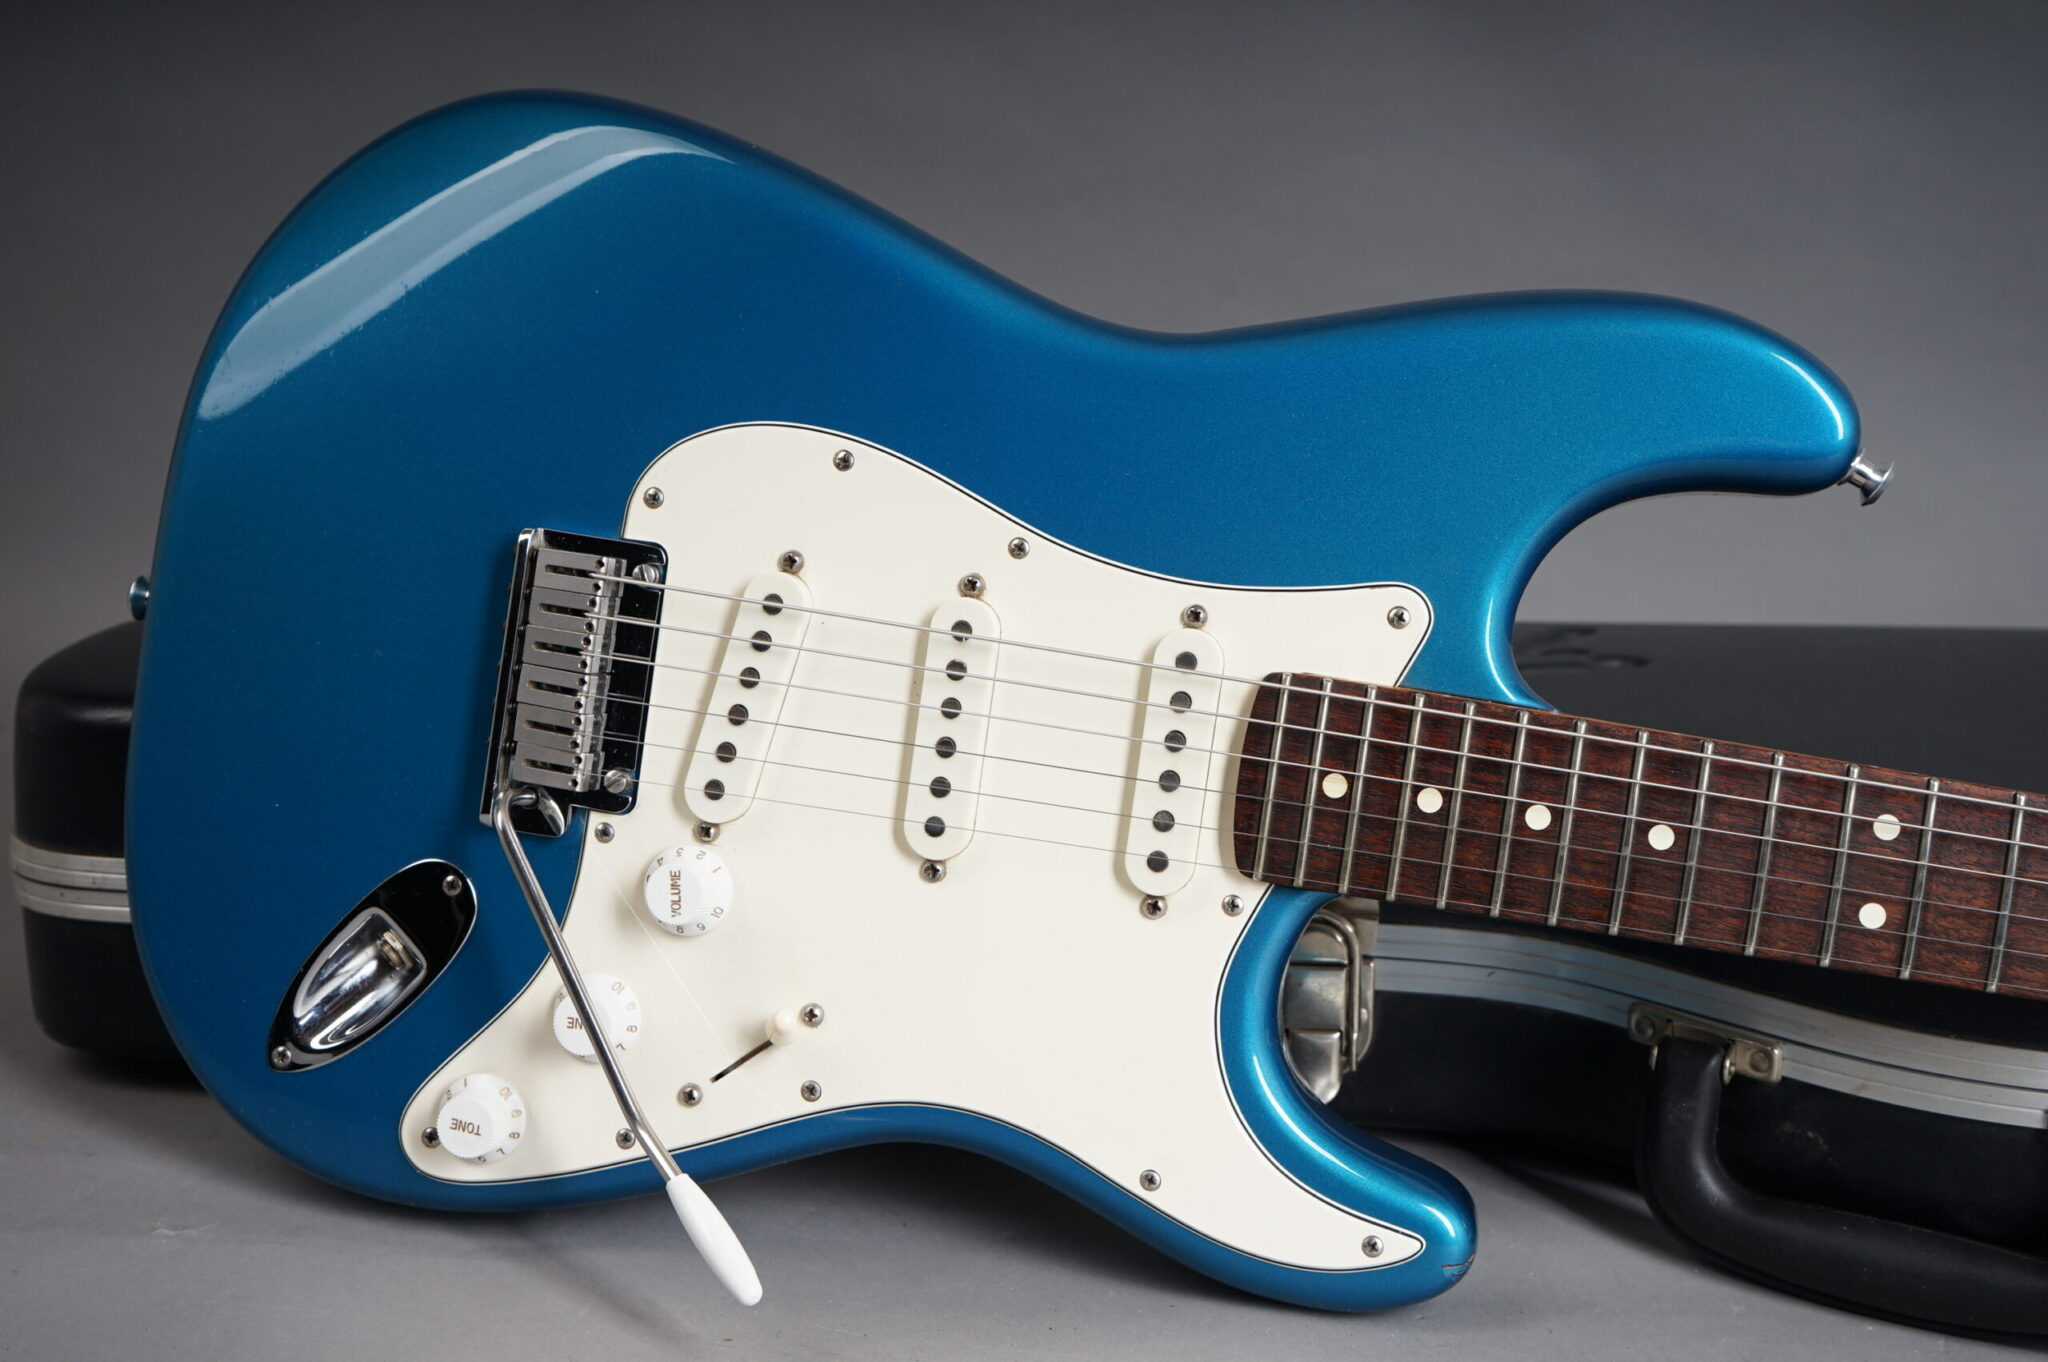 https://guitarpoint.de/app/uploads/products/1987-fender-american-standard-stratocaster-lake-placid-blue/1991-Fender-Stratocaster-Blue-E418854-9-scaled-2048x1362.jpg